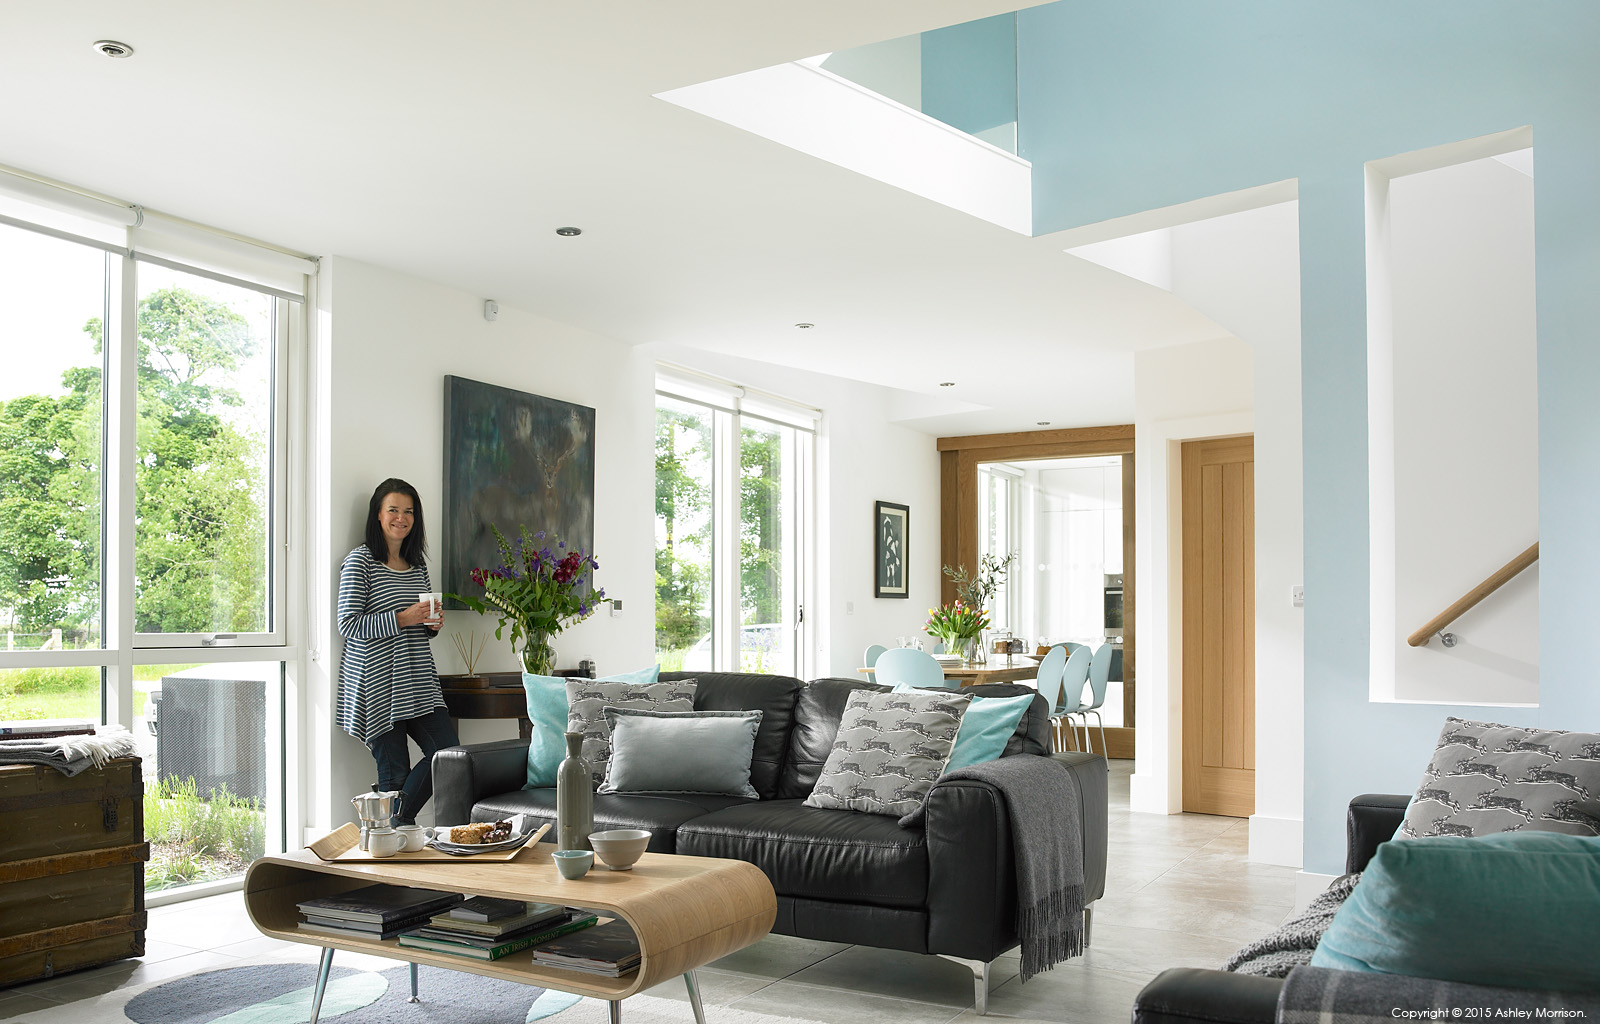 Kim Loughery in the living room of her barn extension near Limavady in County Londonderry